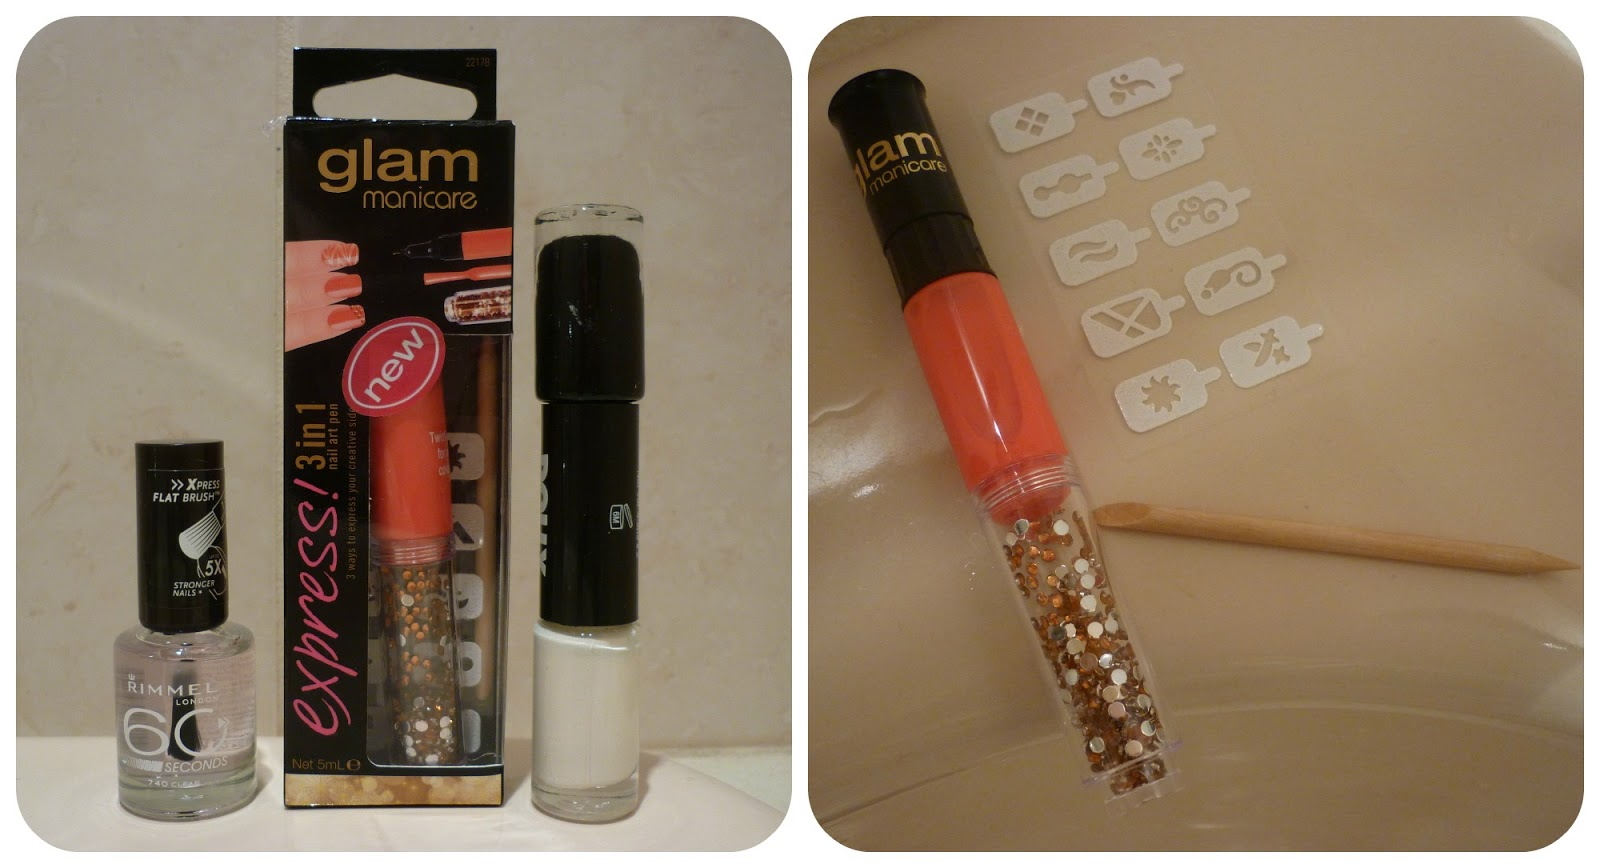 Review: Glam Manicare Express 3 in 1 Nail Art Pen | taken by surprise